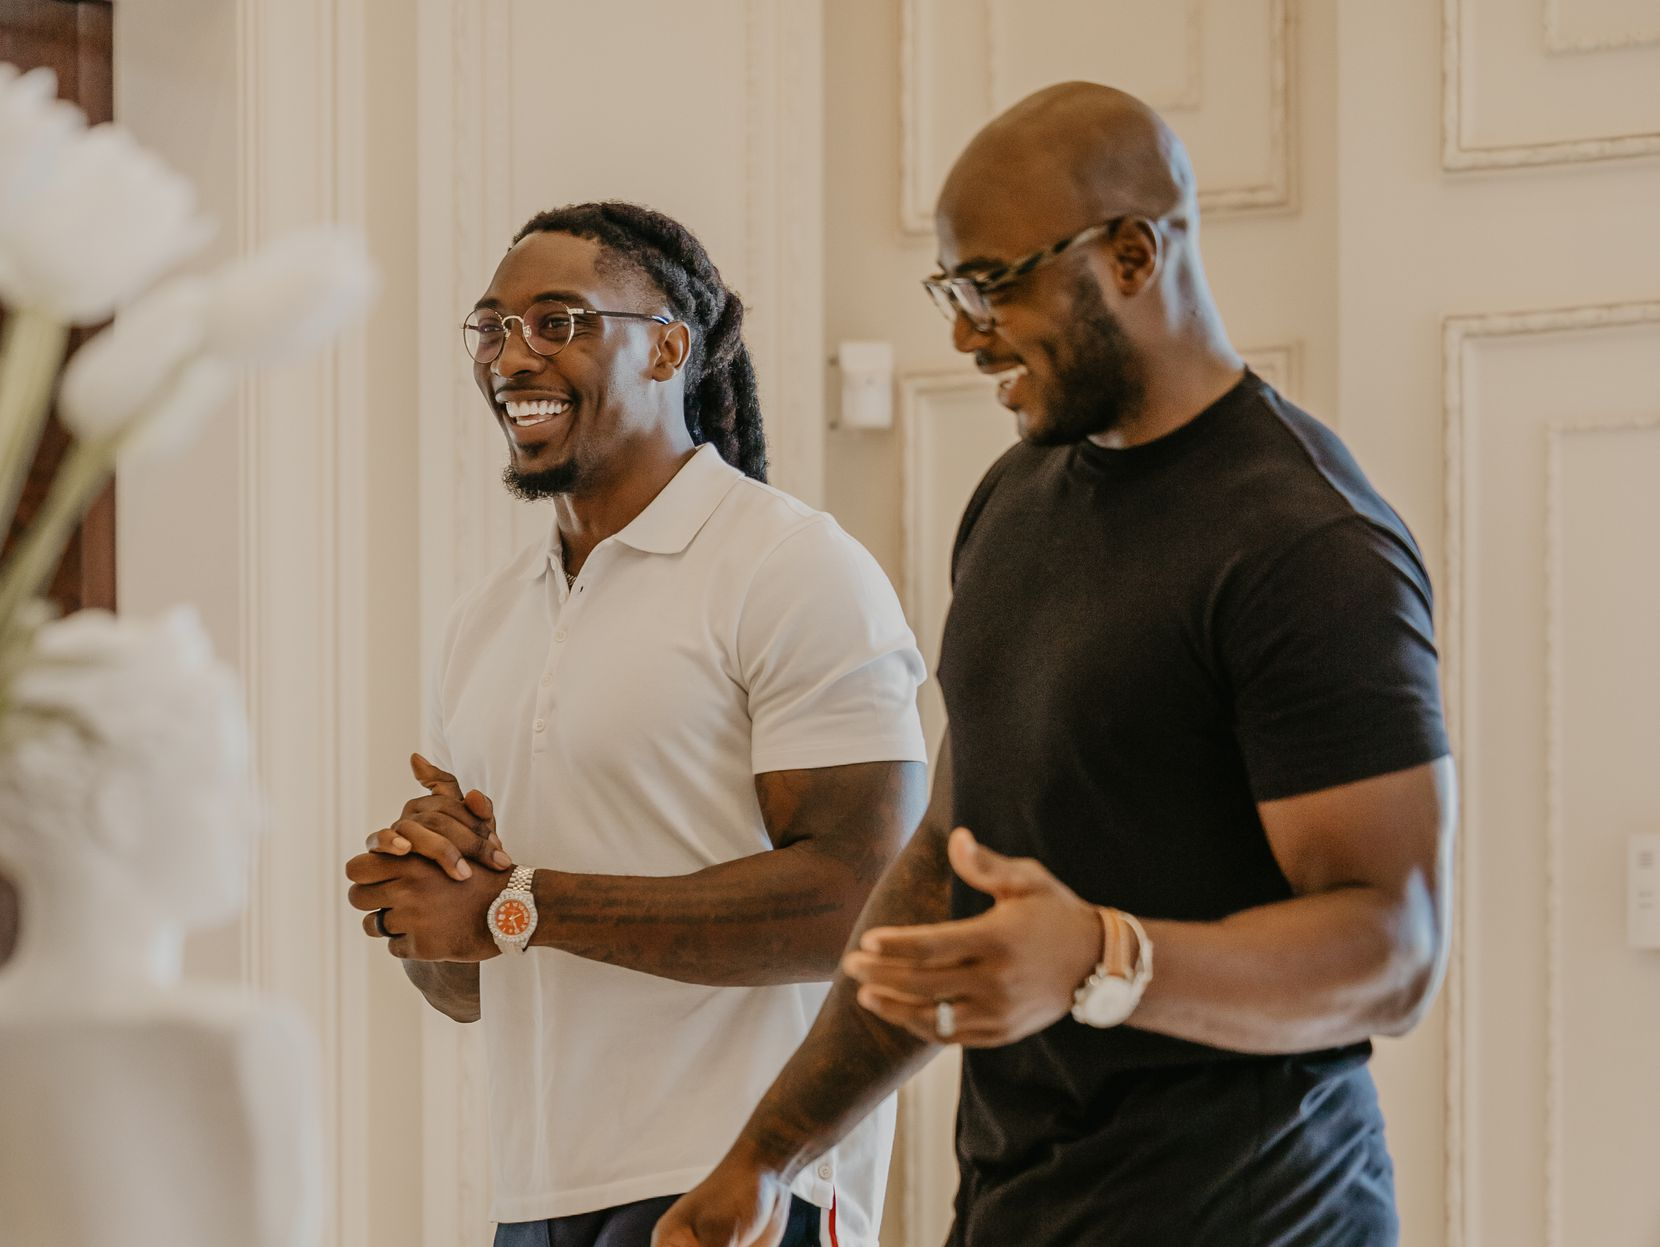 """DeMarcus Lawrence (left) and DeMarcus Ware enjoy a laugh while shooting an episode for Avondale's new original series """"Intersections."""""""